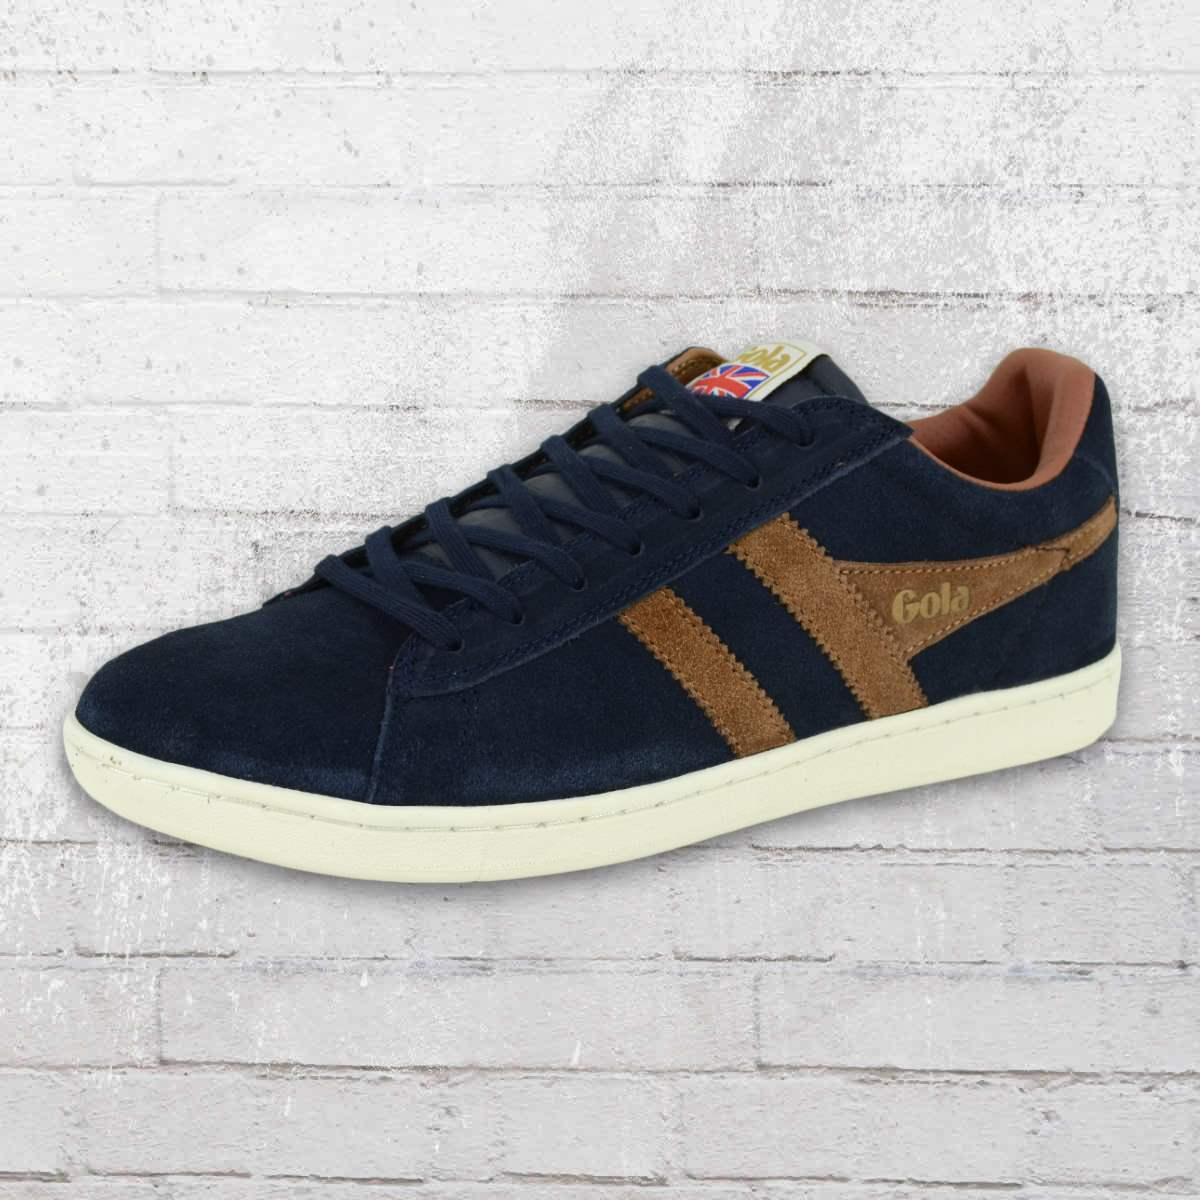 Gola Male Shoes Equipe Suede Trainer navy blue tobacco